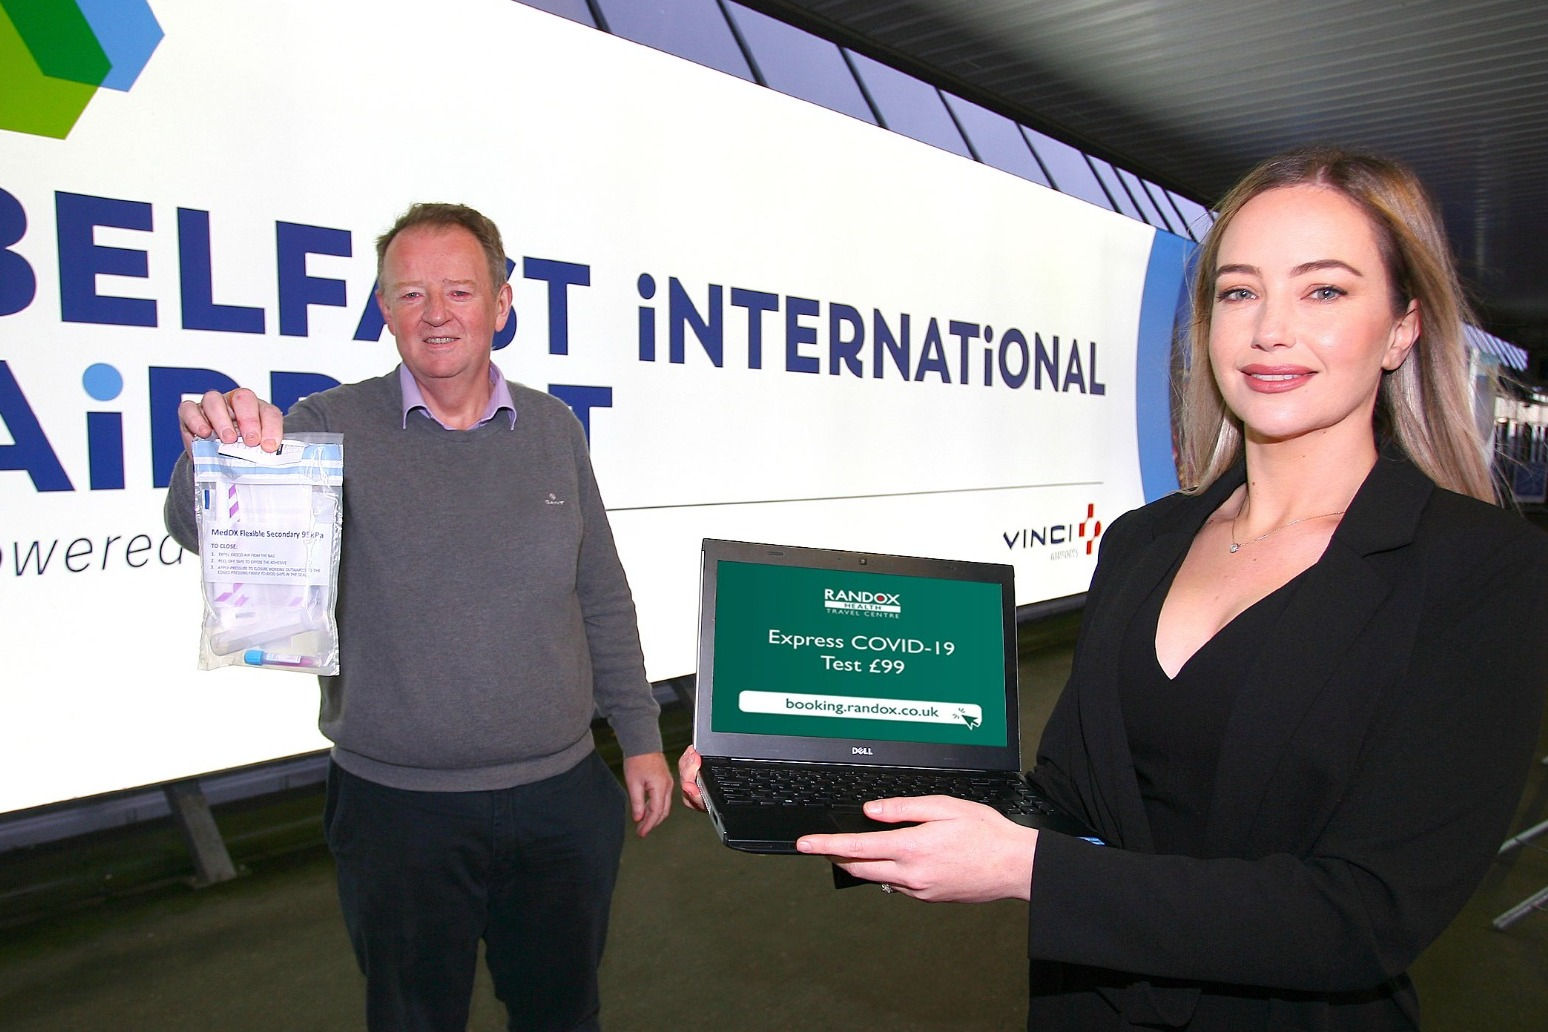 Walk-in testing facility opened at Belfast International Airport